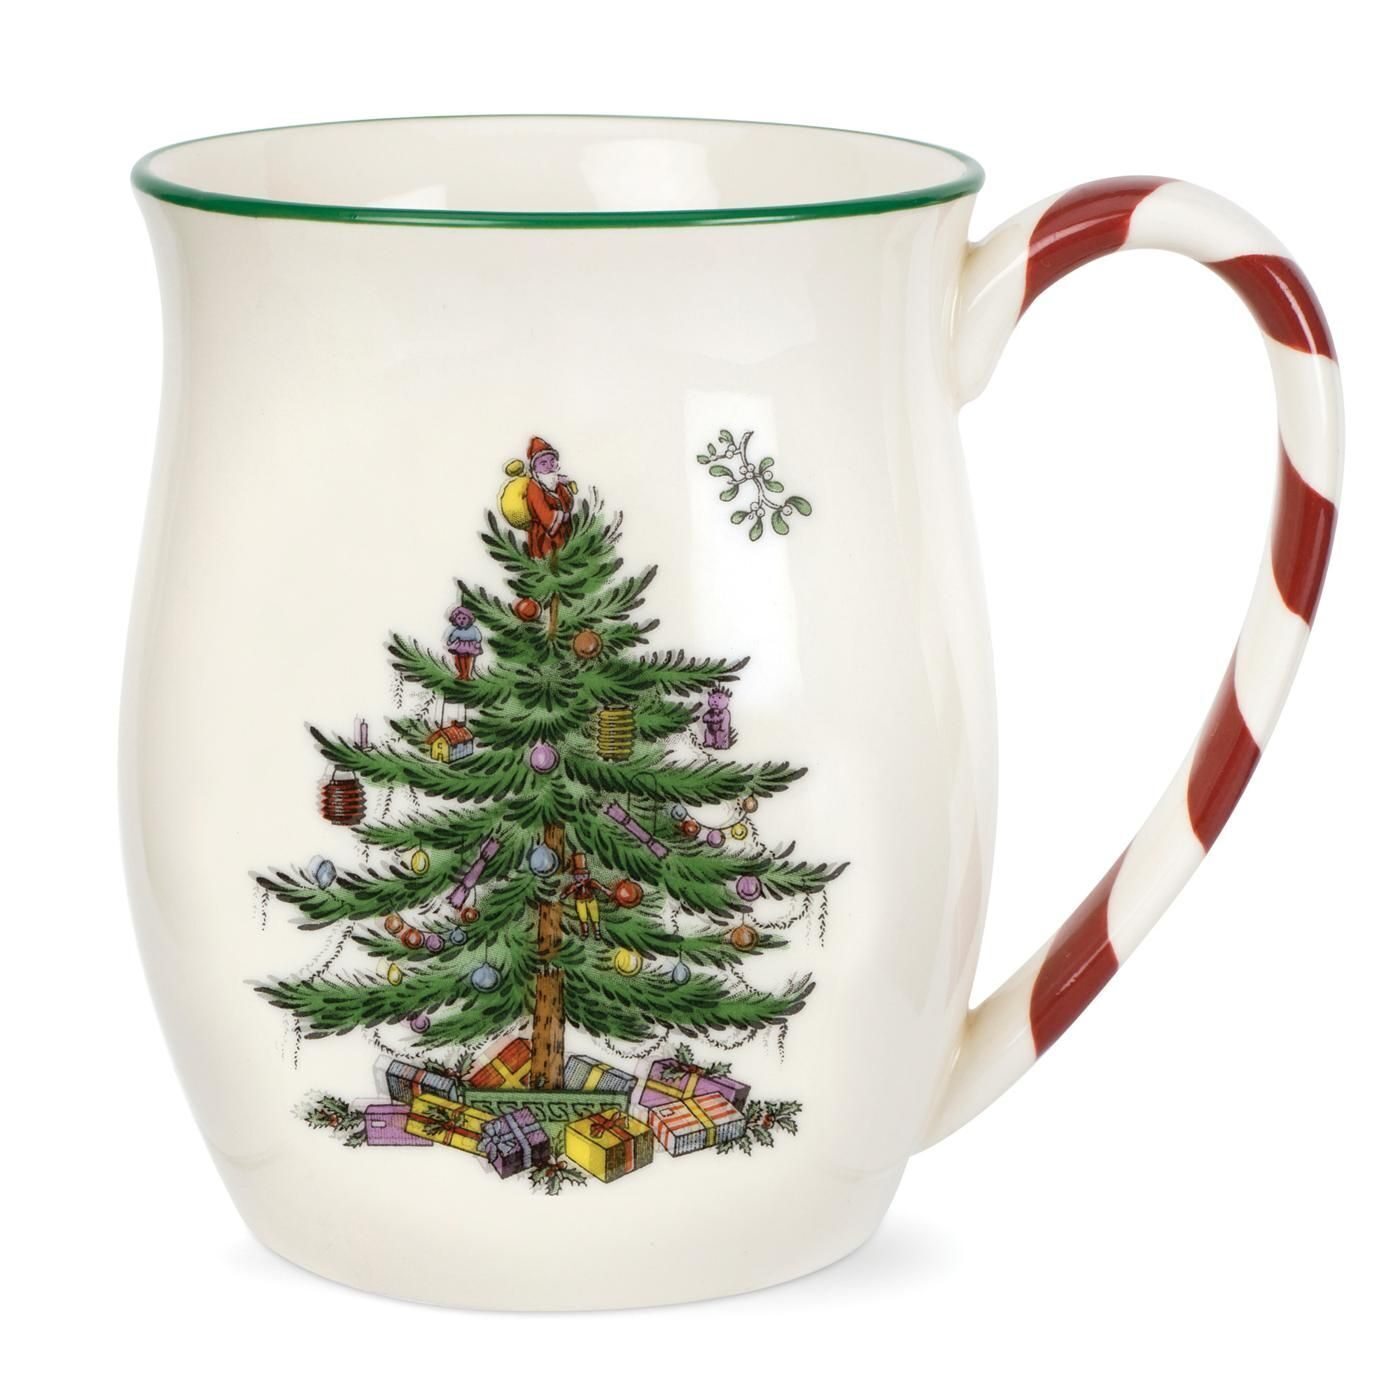 Spode Christmas Tree Mug with Peppermint Handles Set of 2);